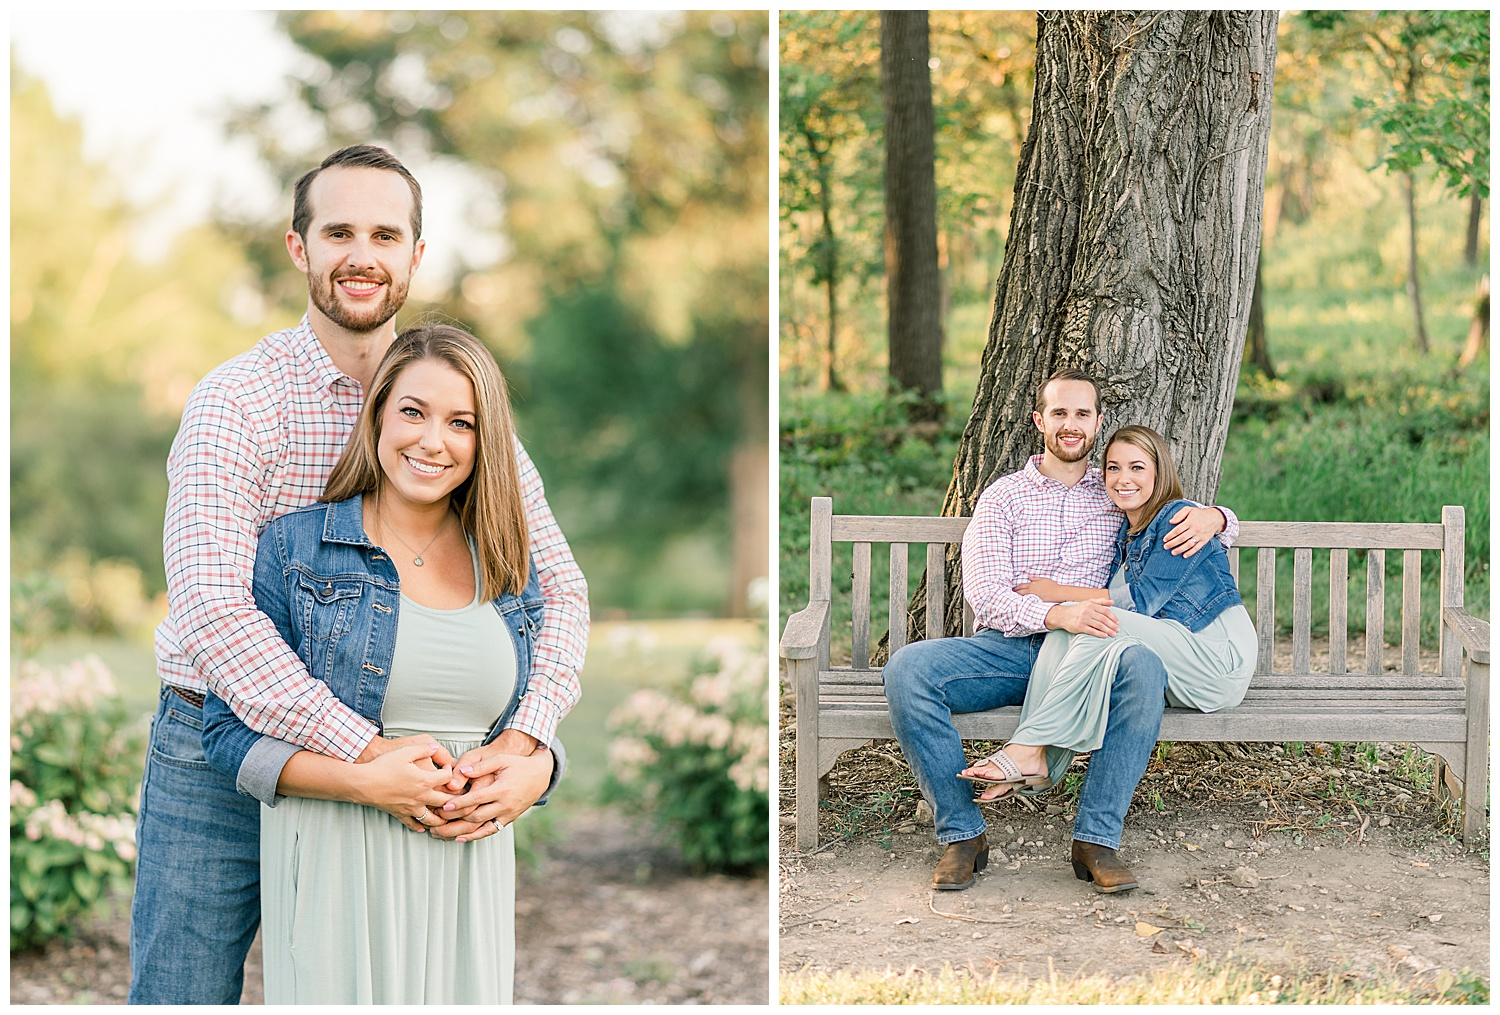 Cox_Arboretum_Anniversary_Session_Miamisburg_Ohio_Cassandra_Janina_Photography_Ohio_Wedding_Photographer_0264.jpg